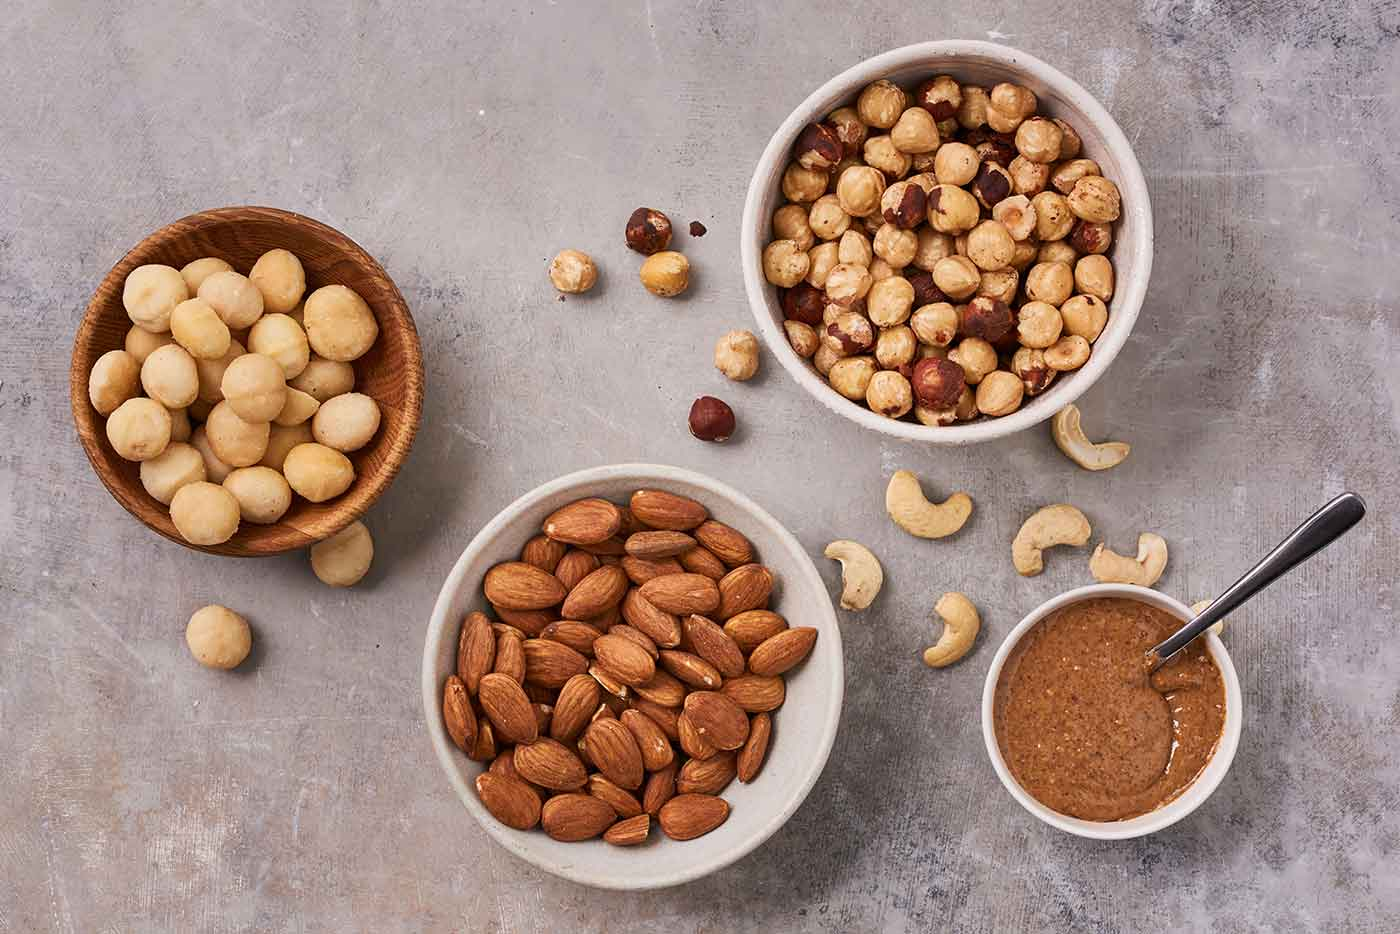 Why nuts are good for your health